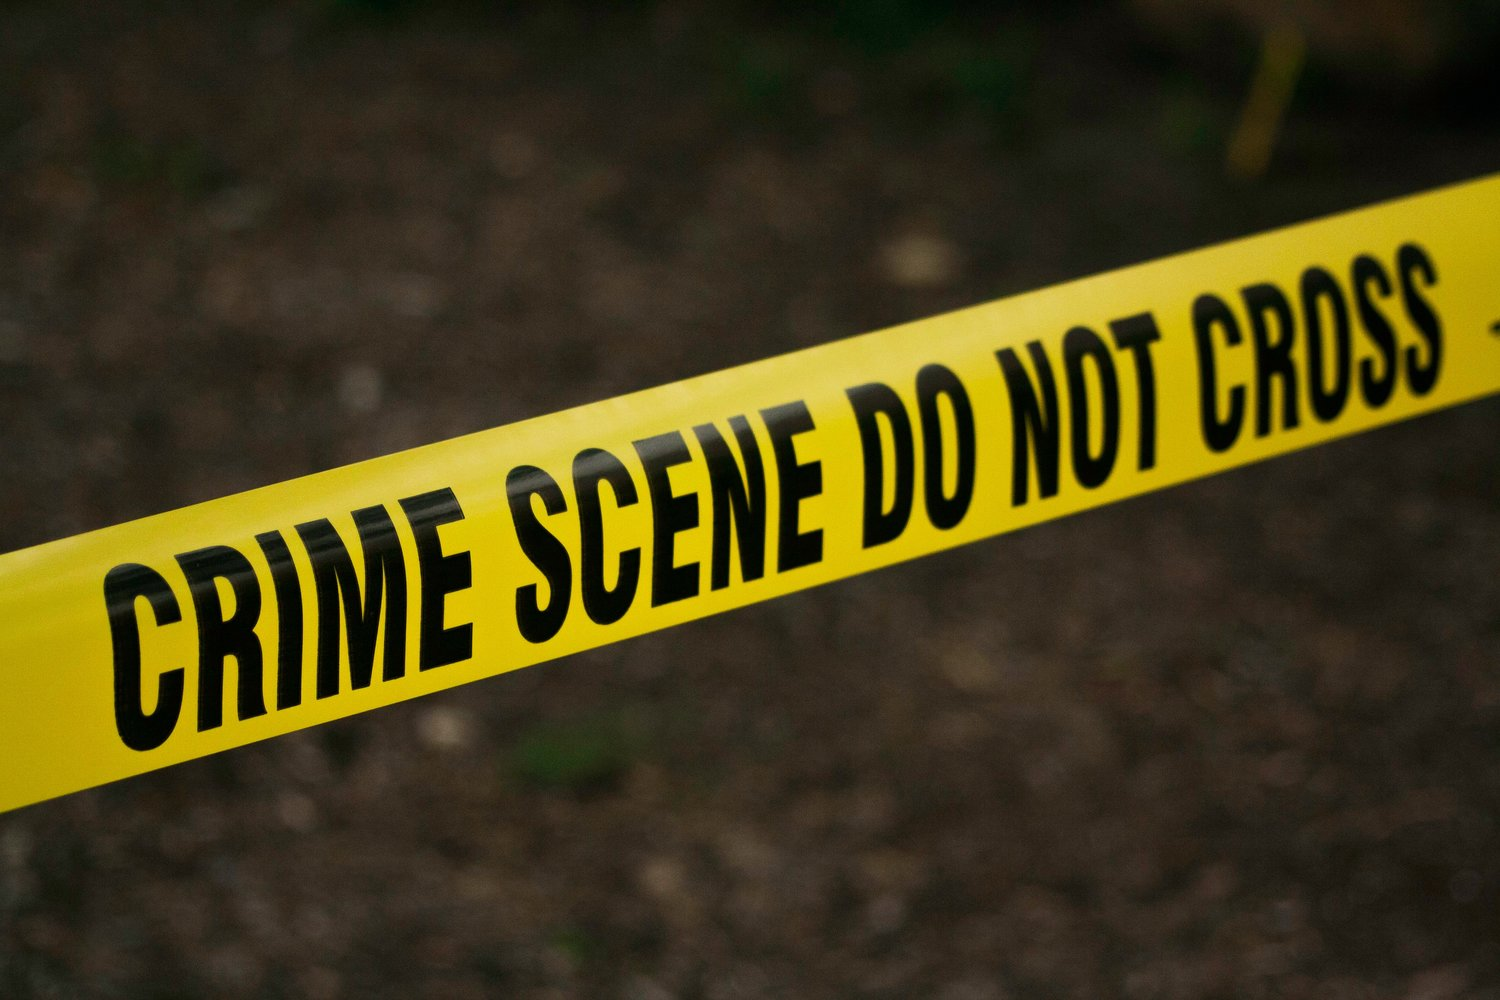 A man has died and his son has been injured after an unknown assailant or assailants fired into his apartment, striking him three times and his five-year-old son once.